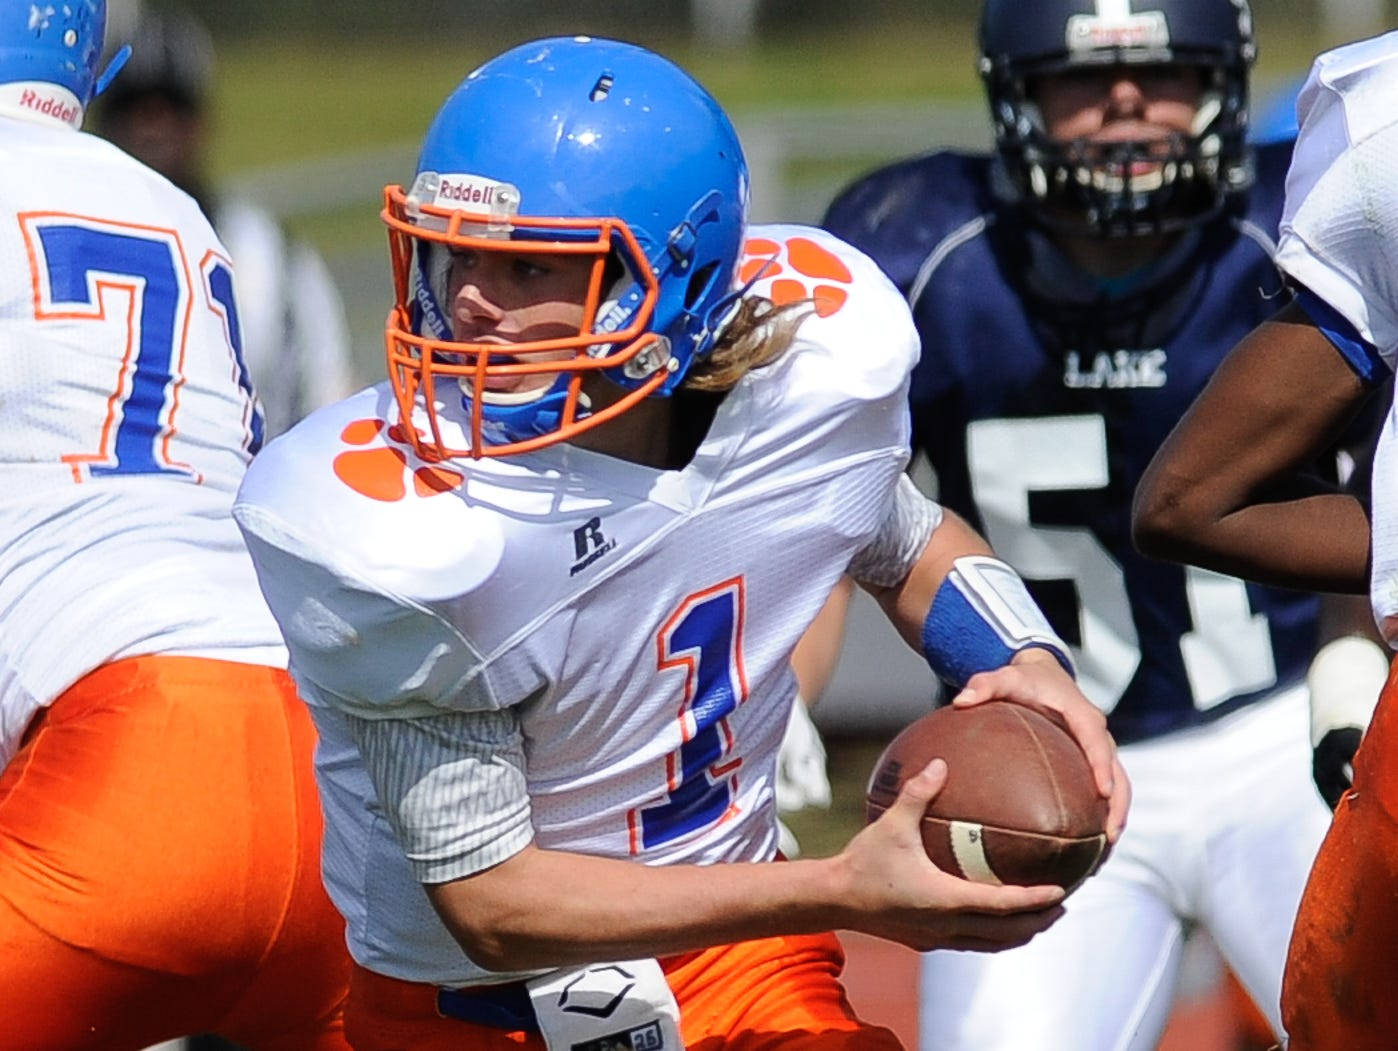 Delmar's quarterback #1 James Adkins with the ball in their 19-14 lose to Lake Forest on Saturday at Lake Forest High School.